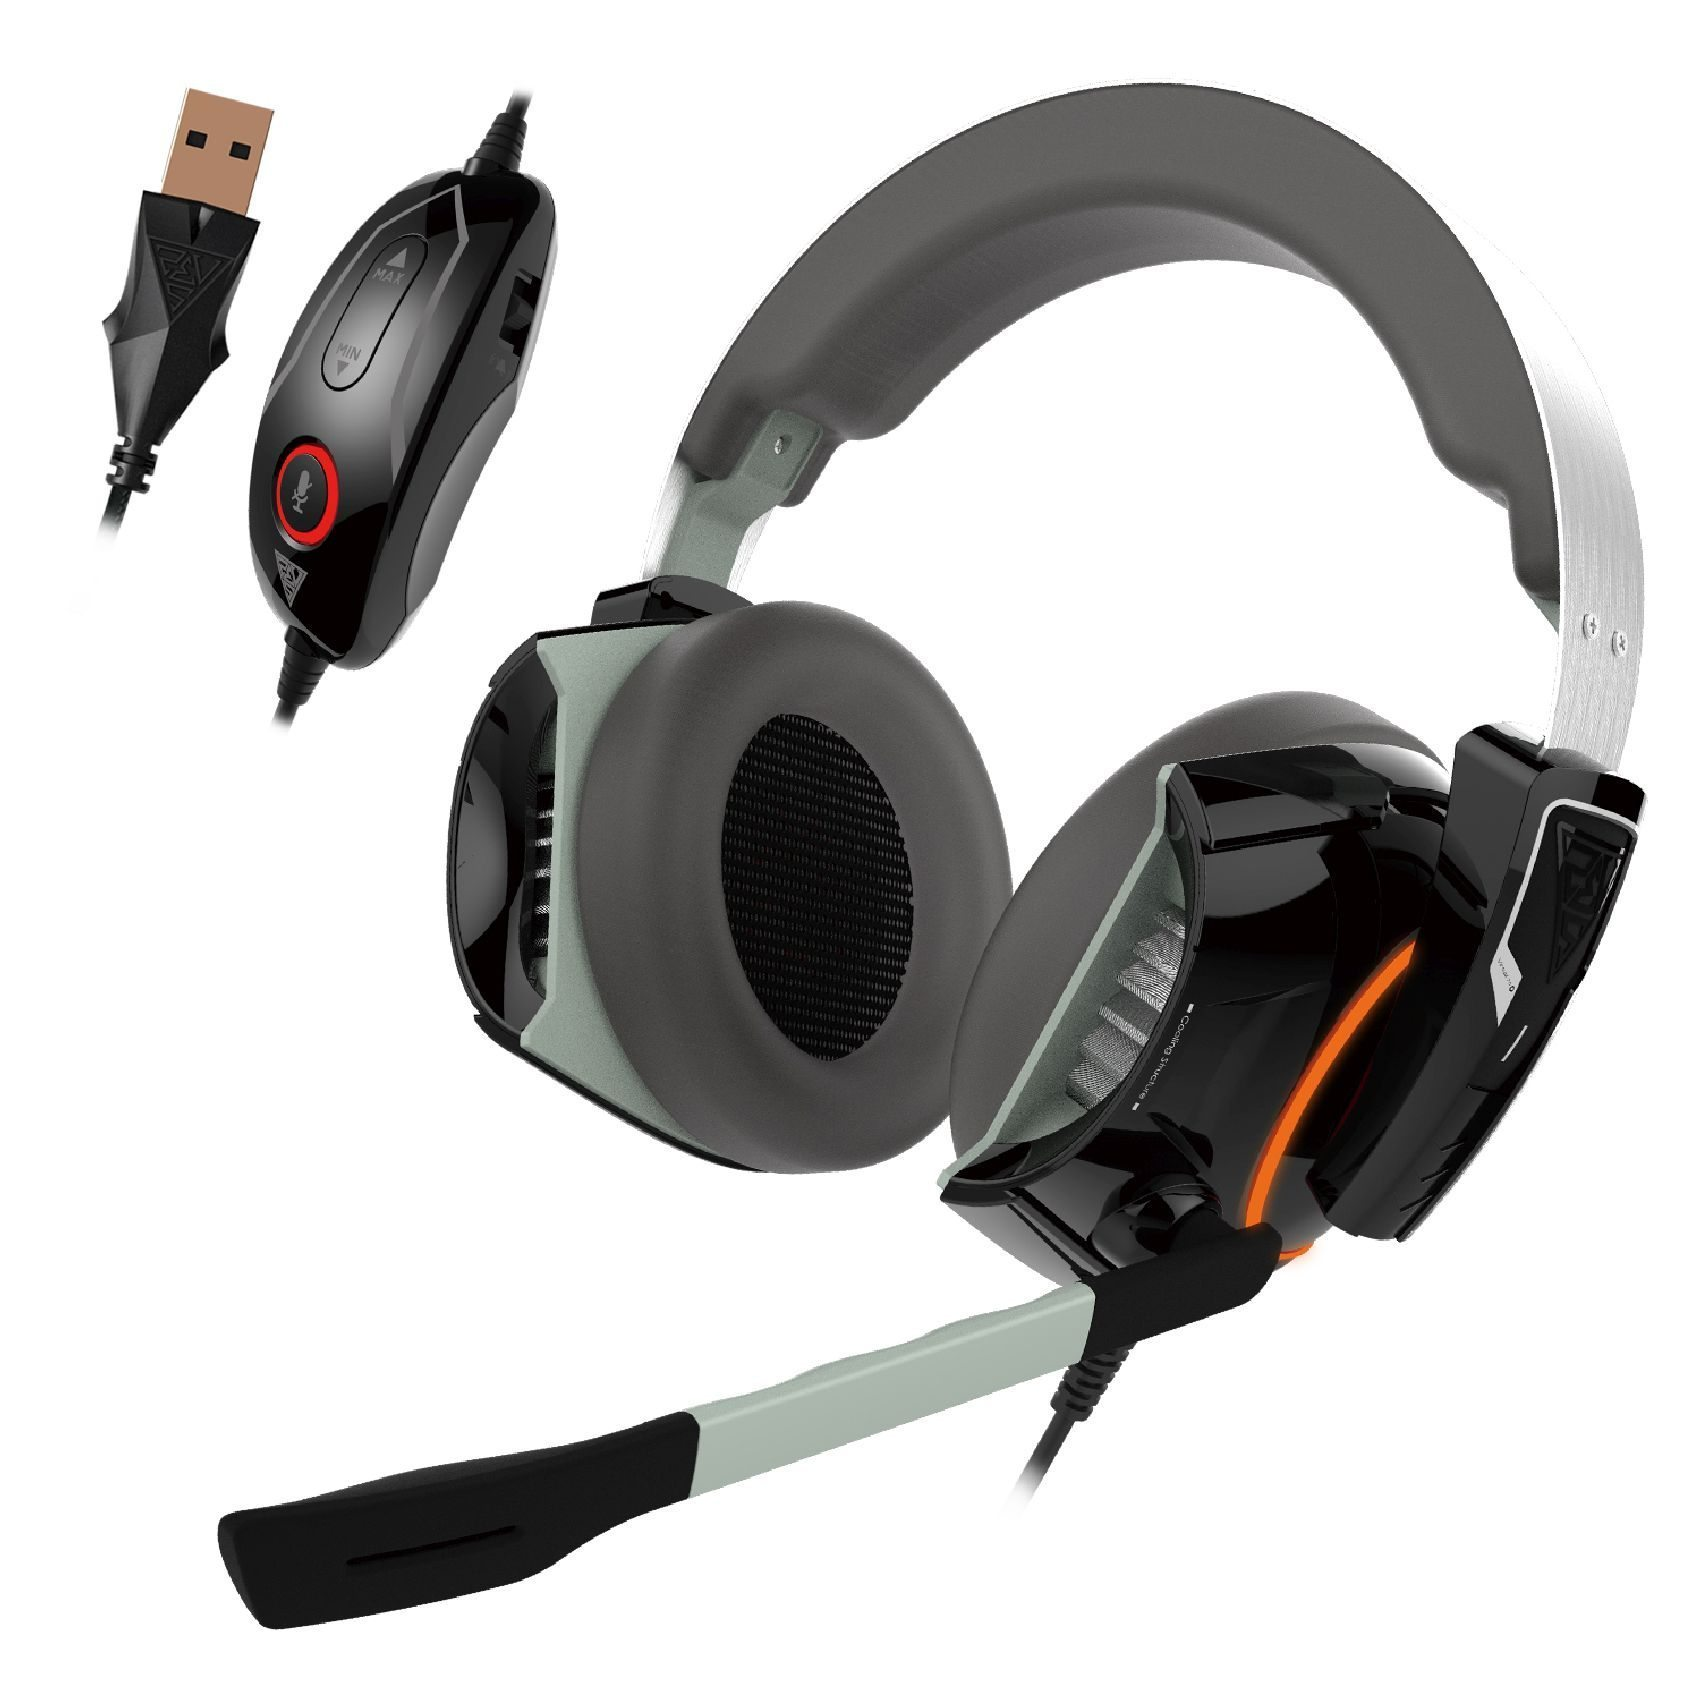 геймърски слушалки Gaming Heaphones - HEPHAESTUS P1 RGB Virtual 7.1